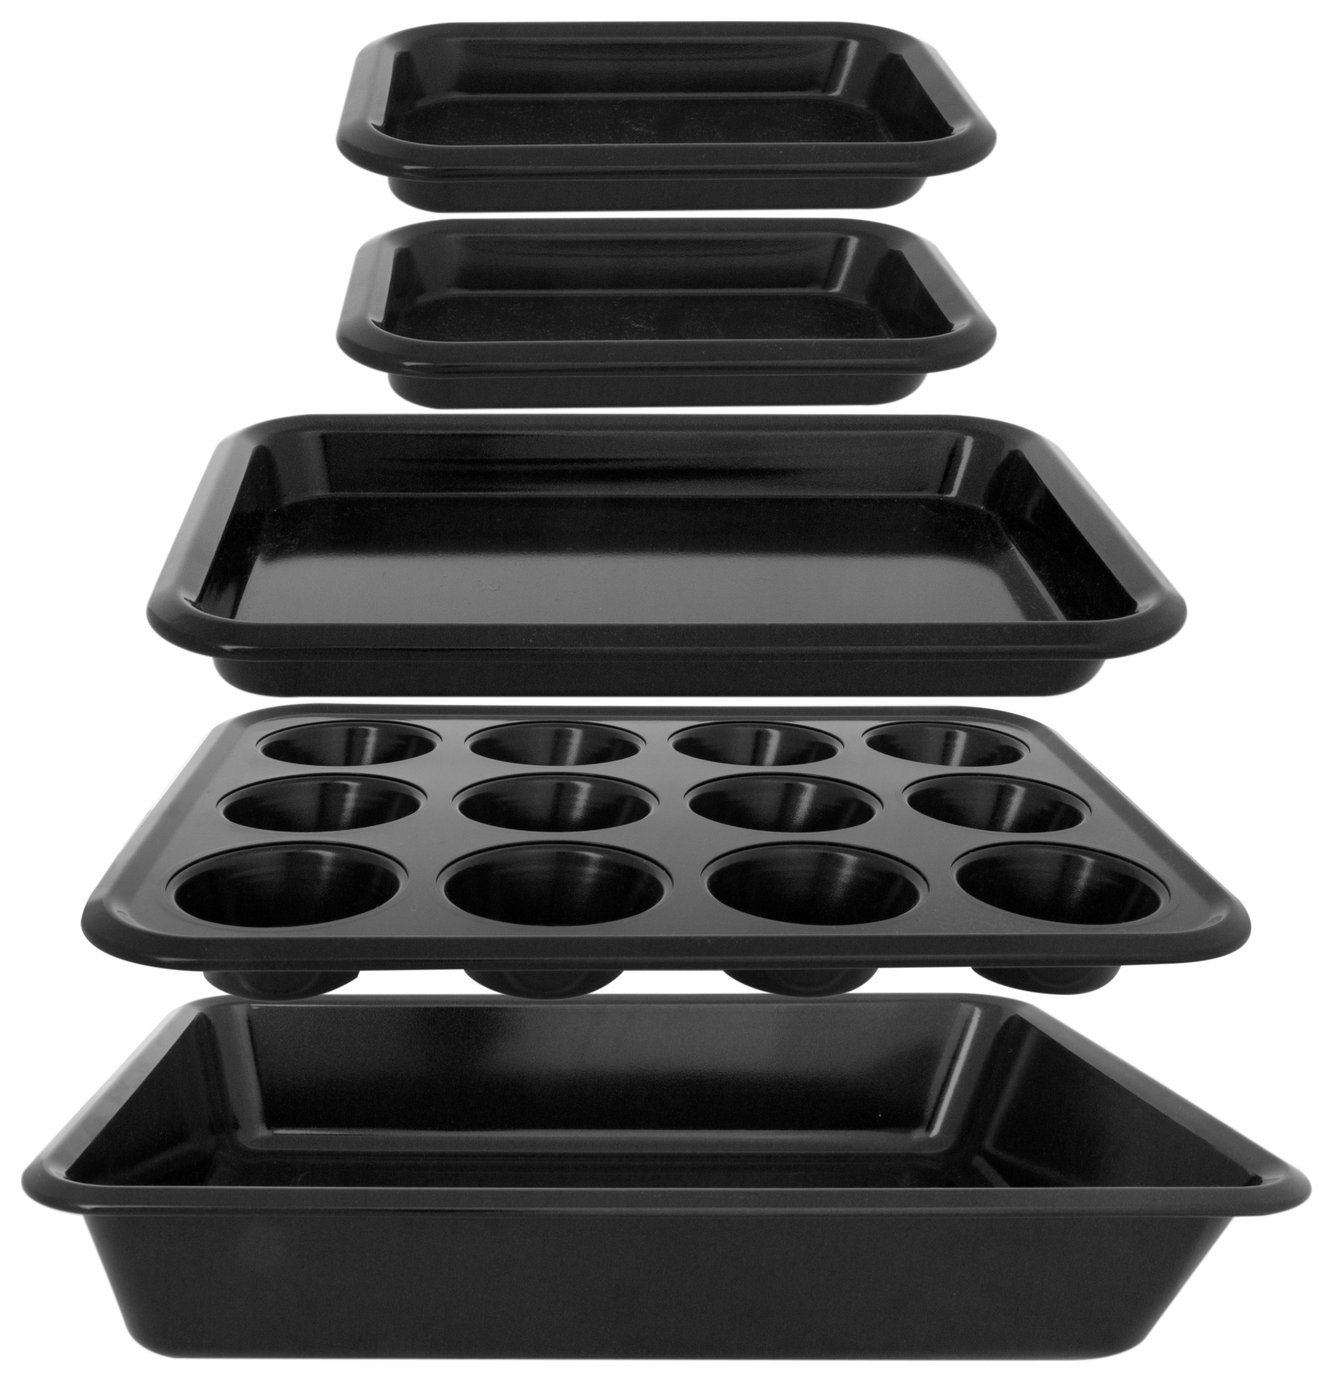 Sainsbury's Home 5 Piece Bakeware Set